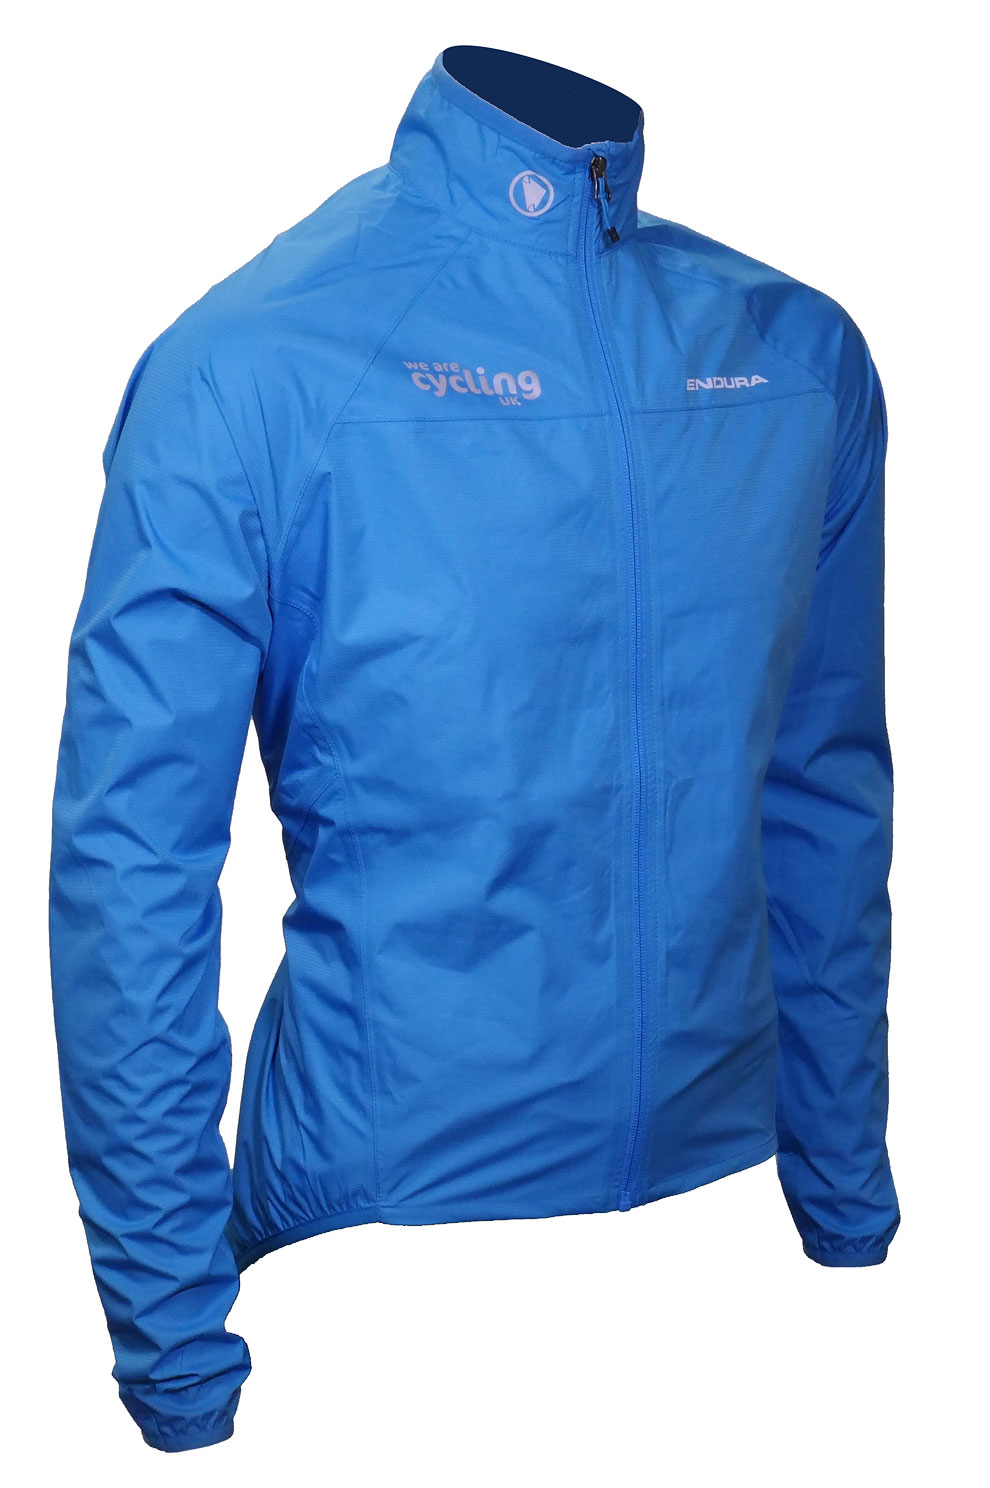 Cycling UK Endura Waterproof Jacket